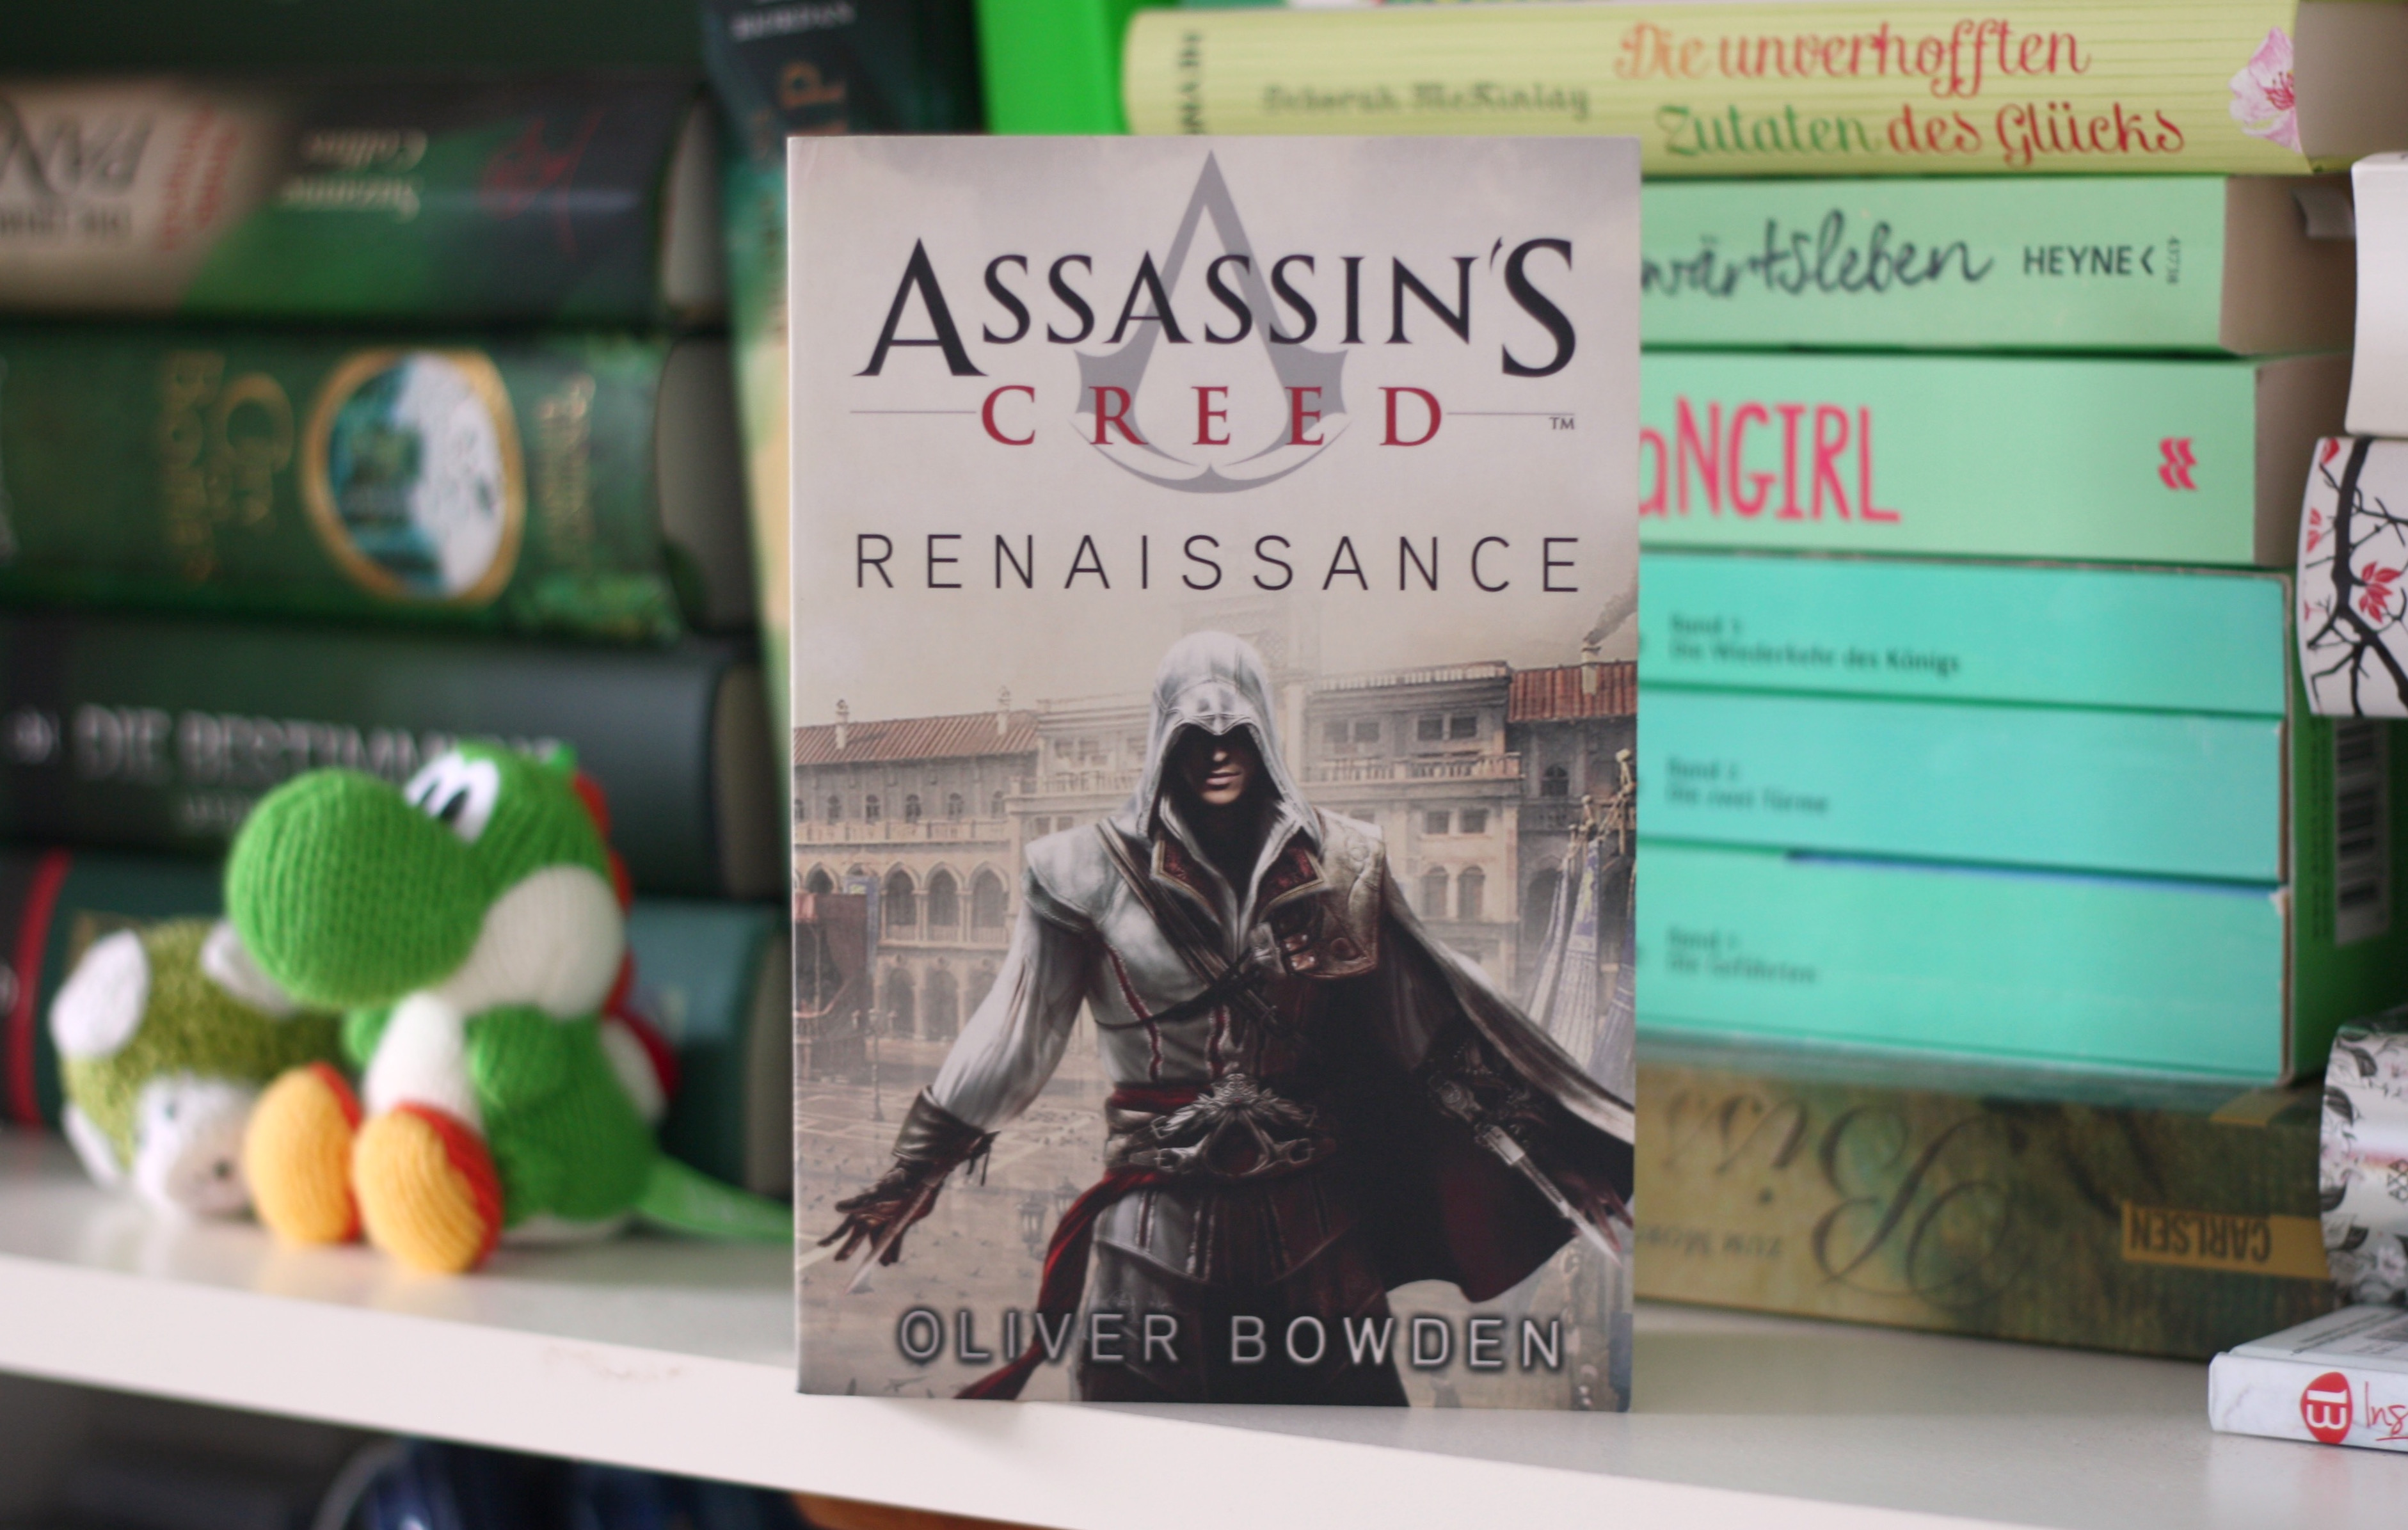 Assassin's Creed Renaissance – Oliver Bowden